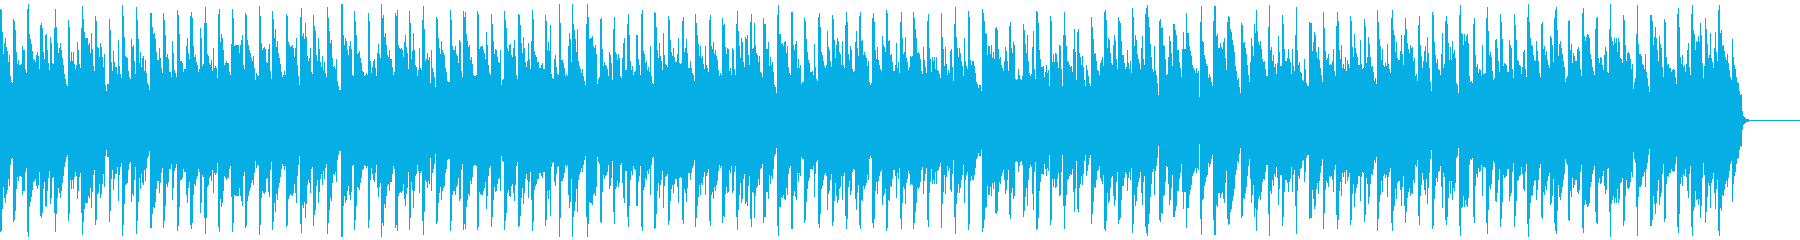 Handel Snare Ver Mello without award ceremony's reproduced waveform